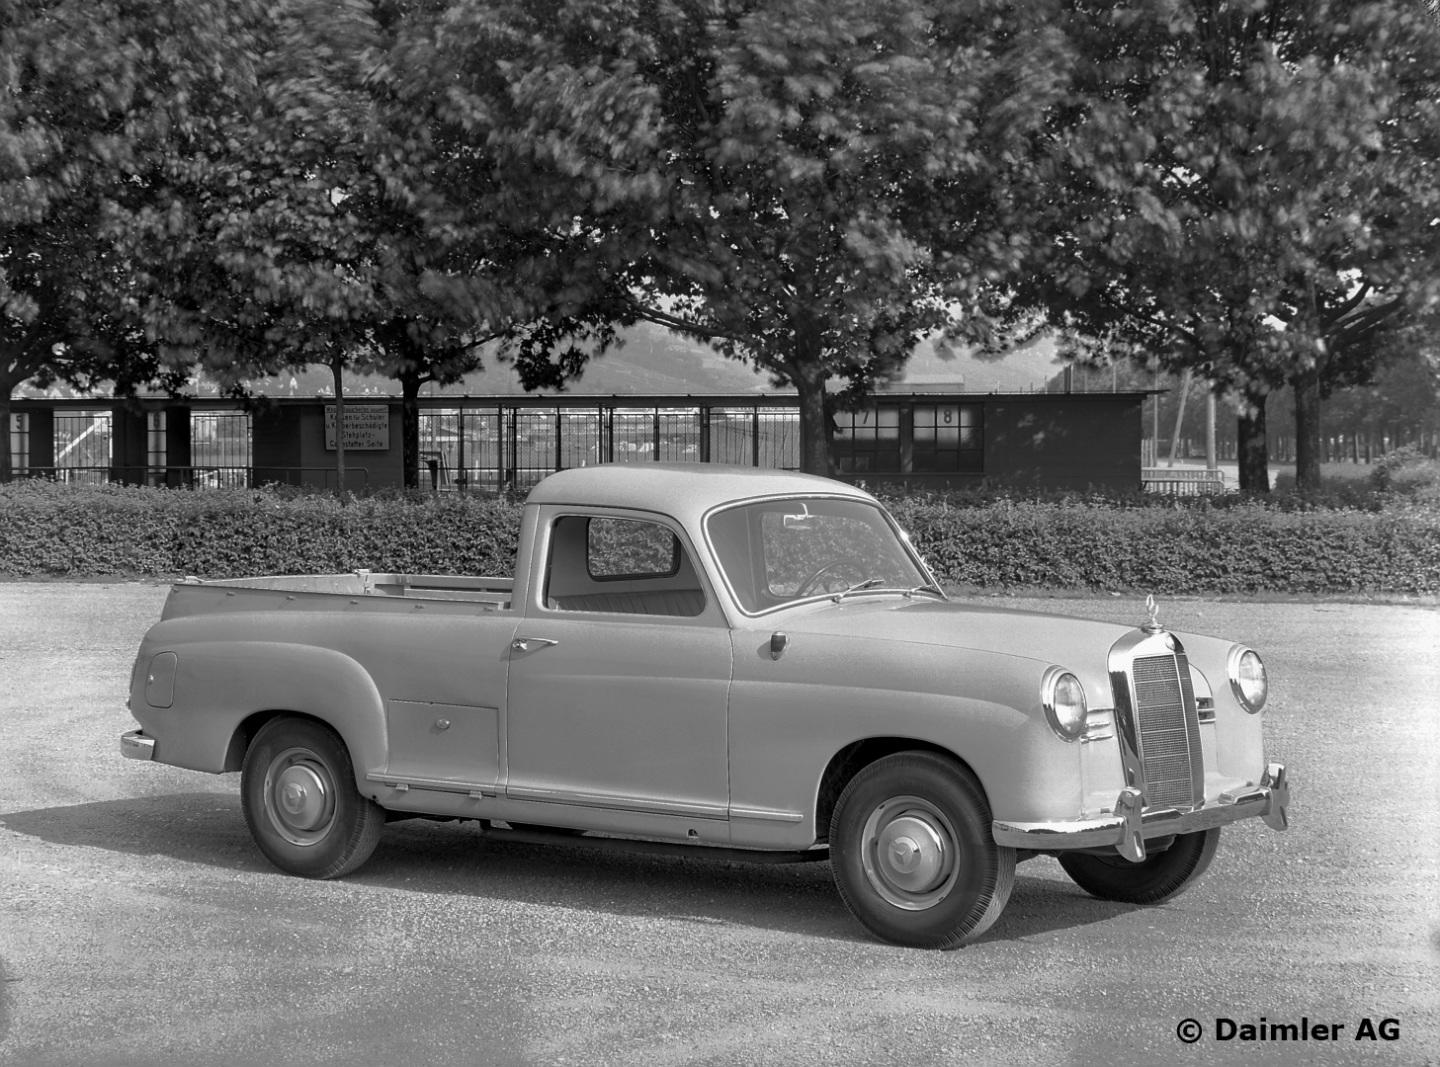 6 Passenger Vehicles >> X-Class, not the first Mercedes-Benz pick-up in history - MercedesBlog